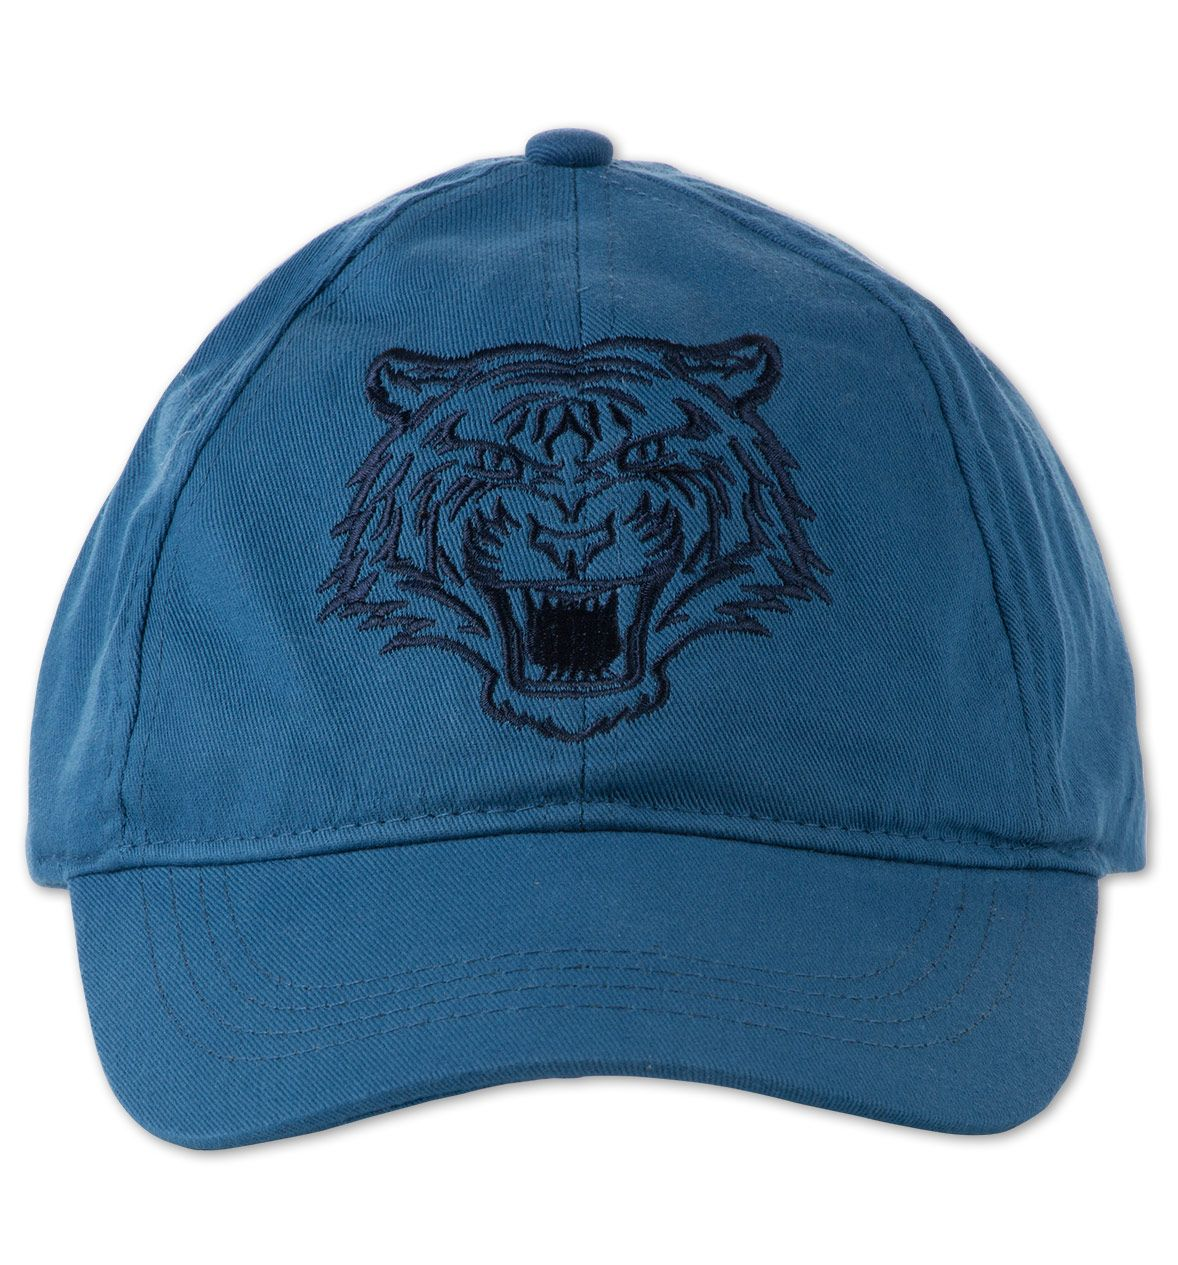 Frontimage view Gorra de béisbol in azul | Hats | Pinterest